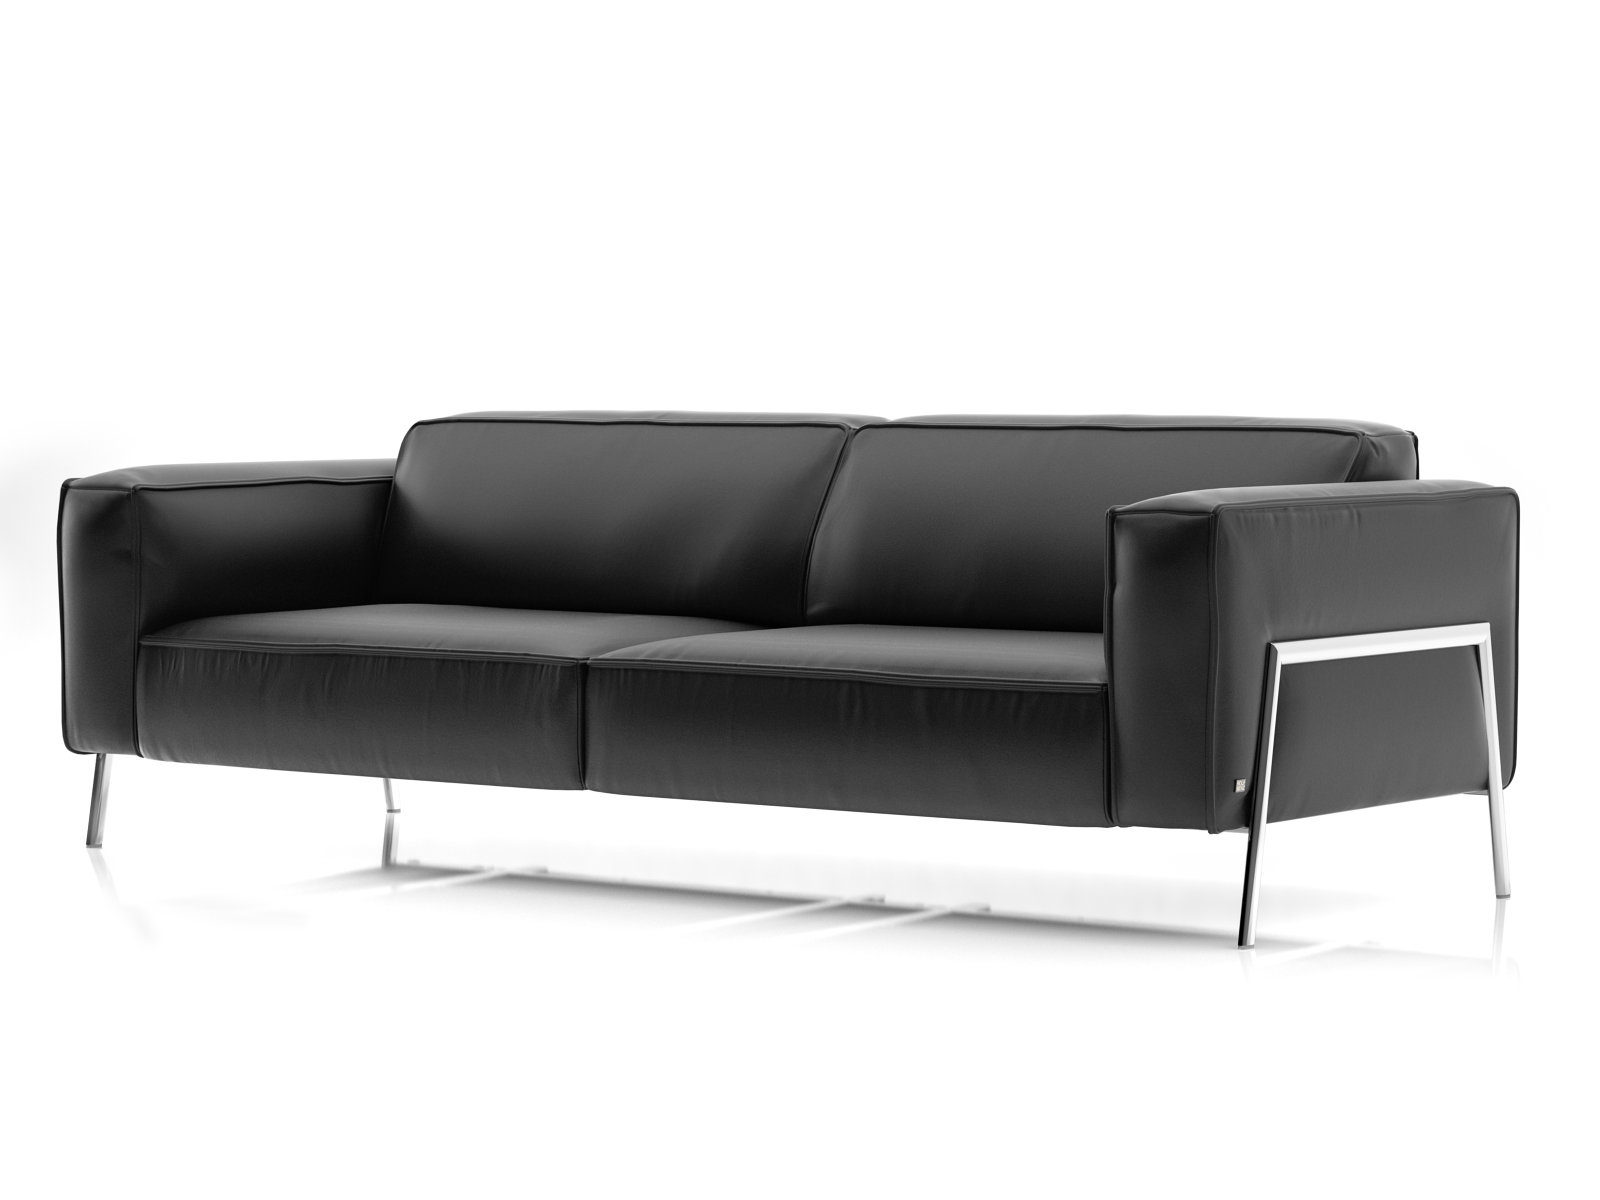 sofa rolf benz bacio creative commons attribution noncommercial no derivative works. Black Bedroom Furniture Sets. Home Design Ideas